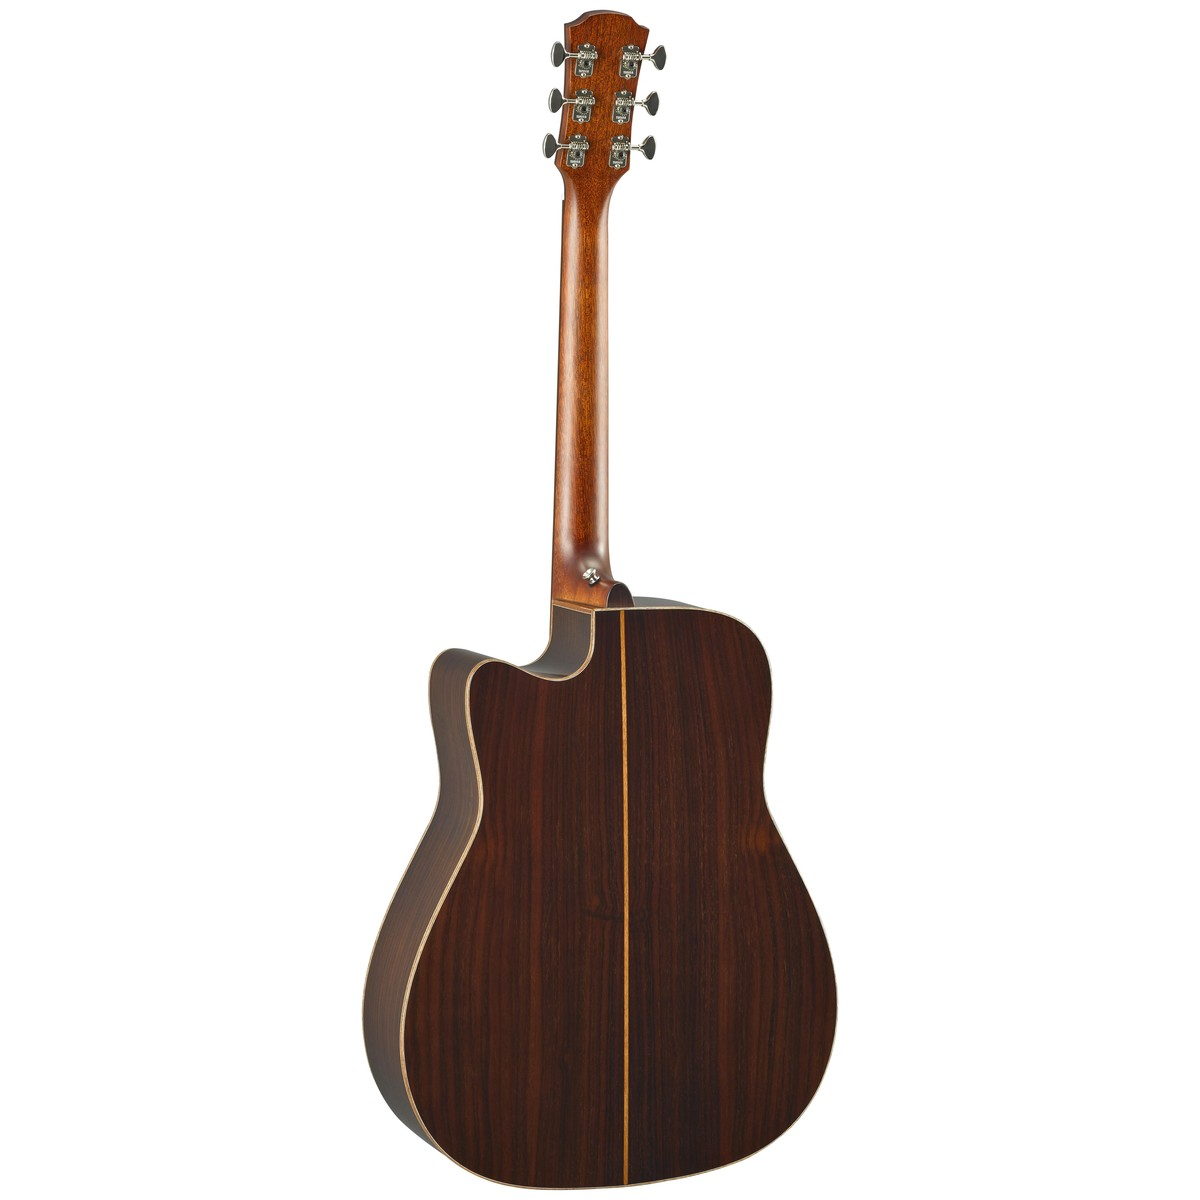 Yamaha a5r rosewood electro acoustic guitar vintage for Where are yamaha guitars made